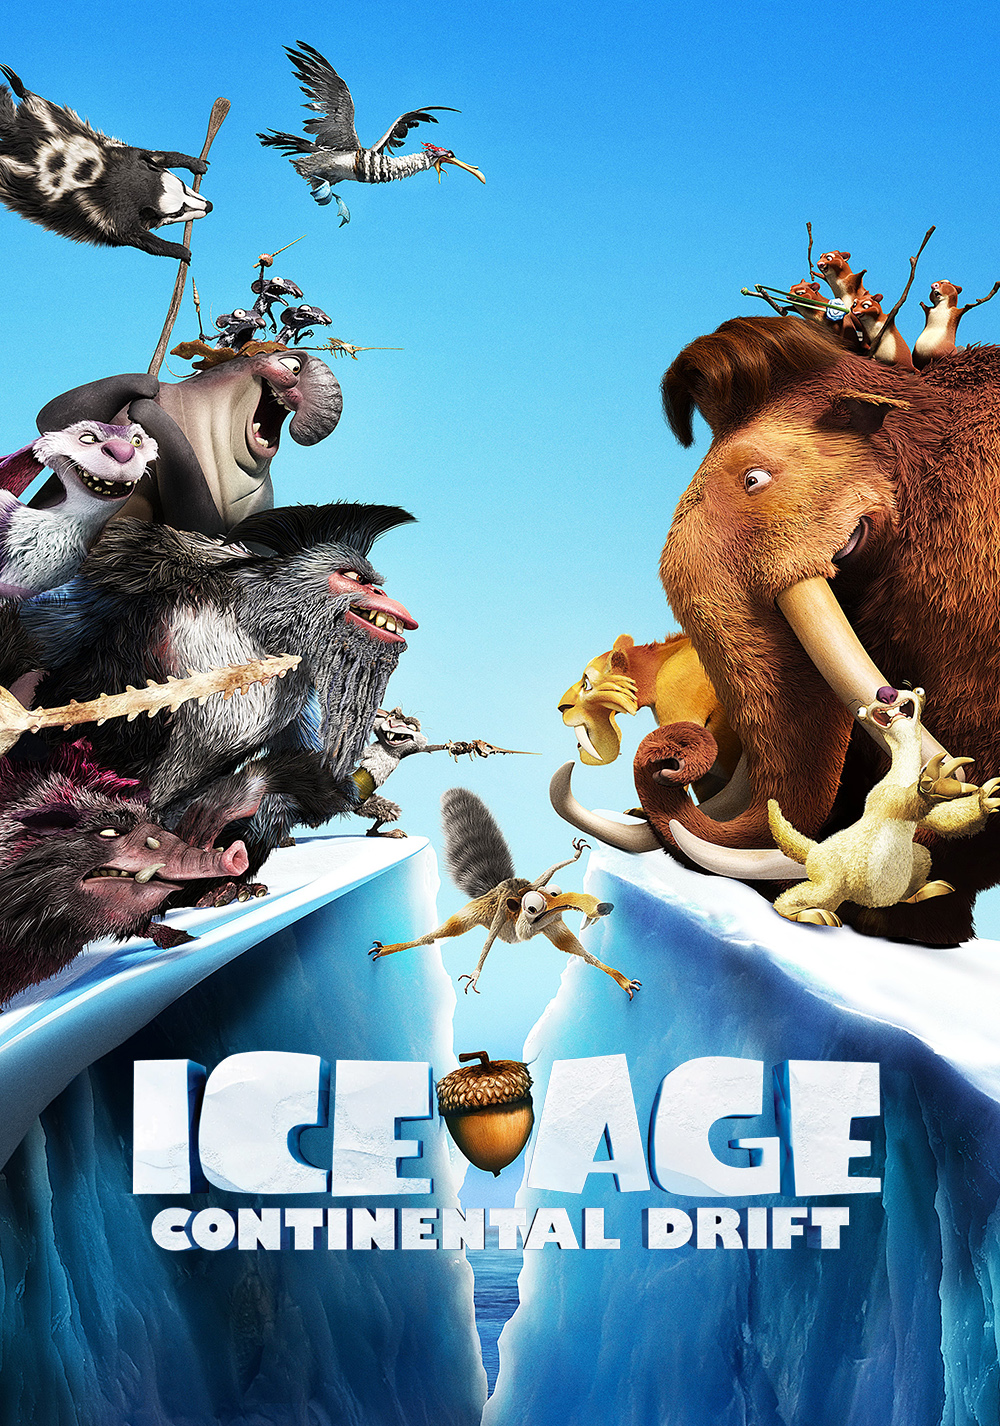 ice-age-continental-drift-52a87a871cca6.jpg